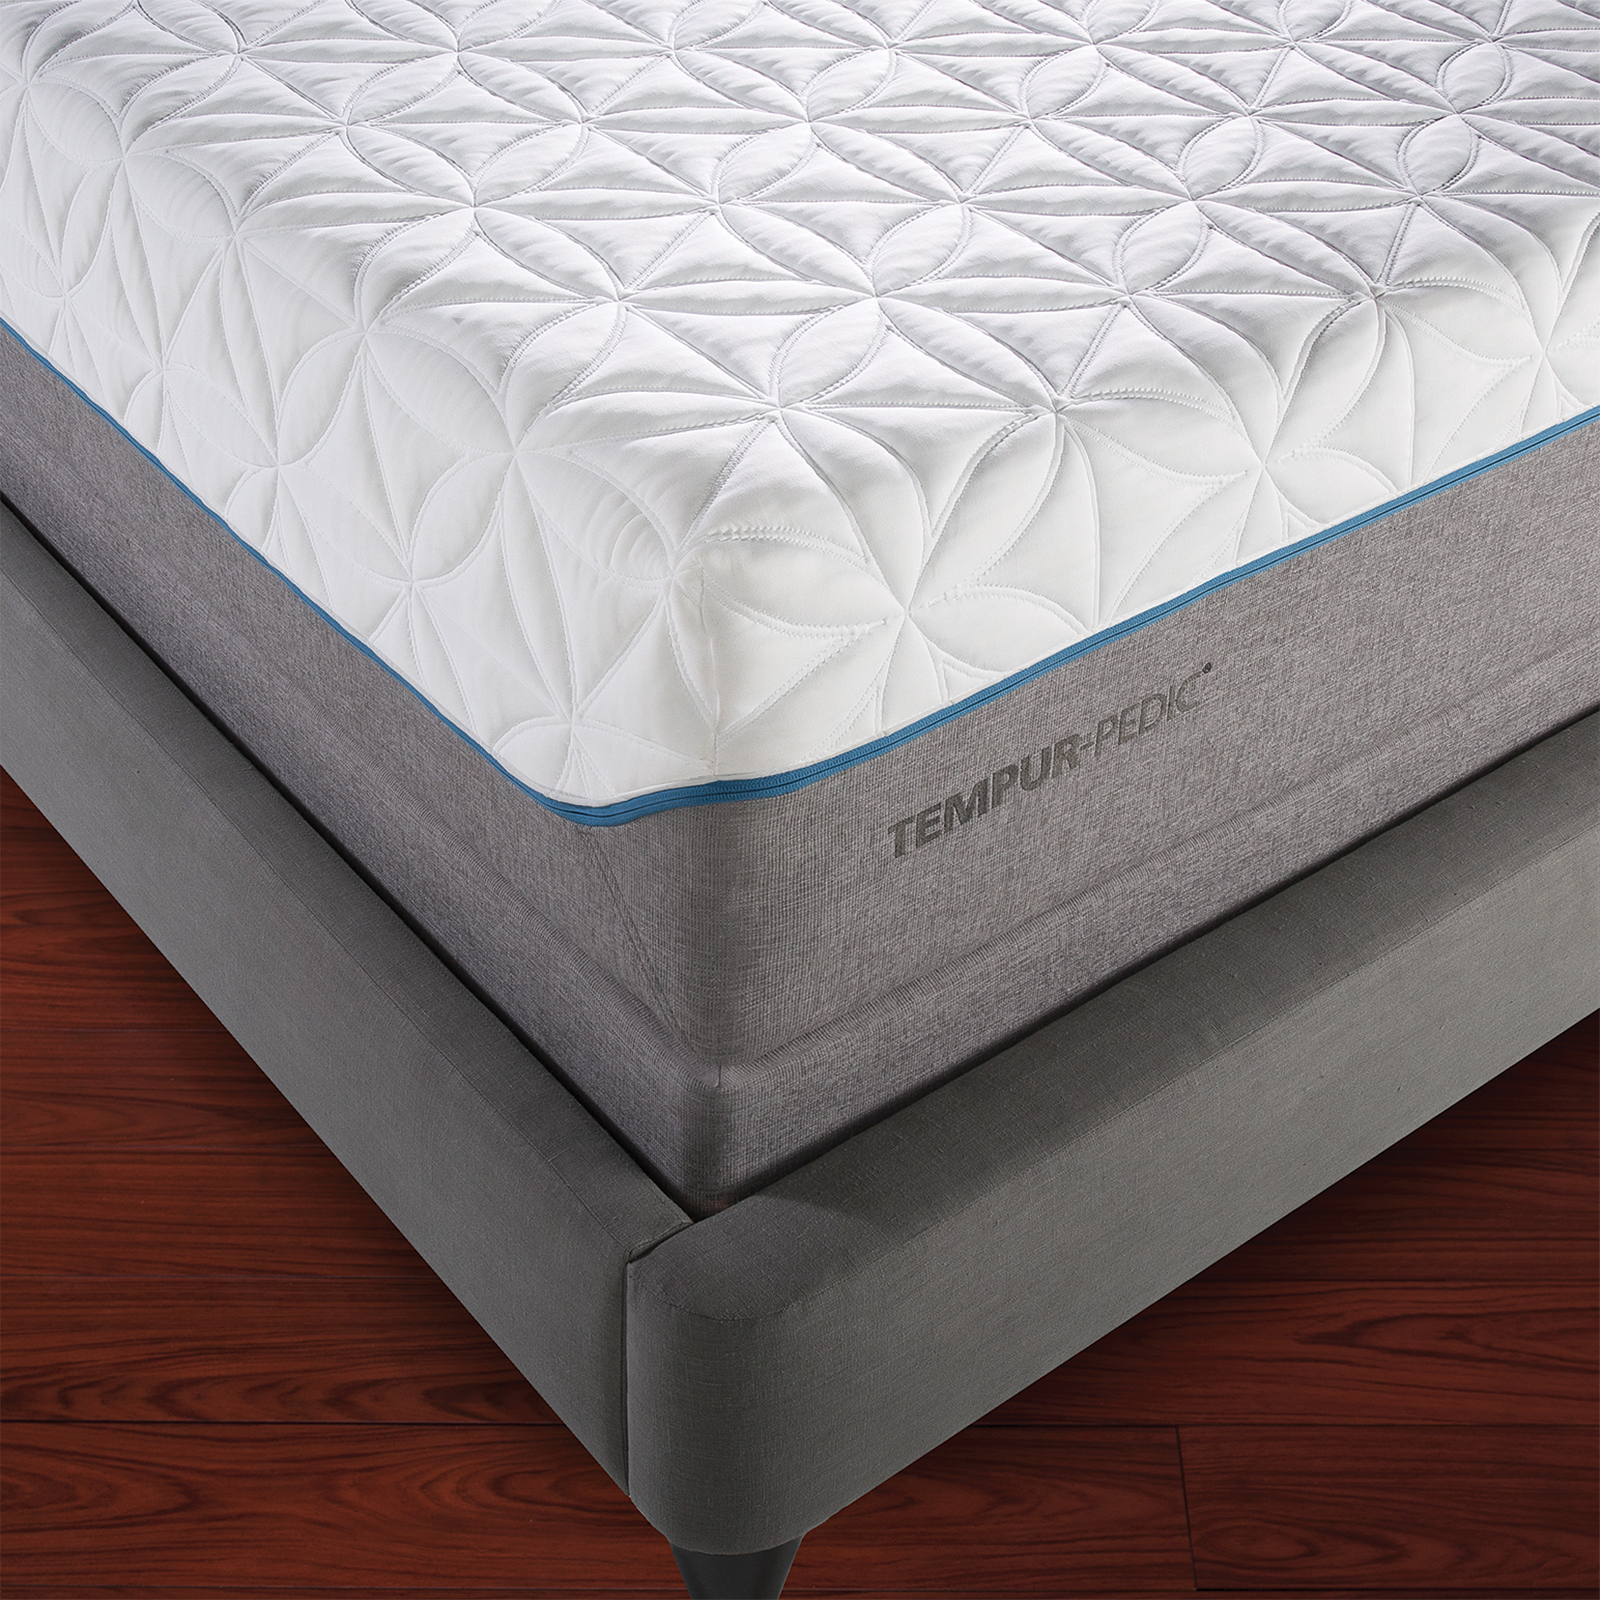 Tempurpedic Mattress King Size Tempur Pedic Tempur Cloud Elite Split California King